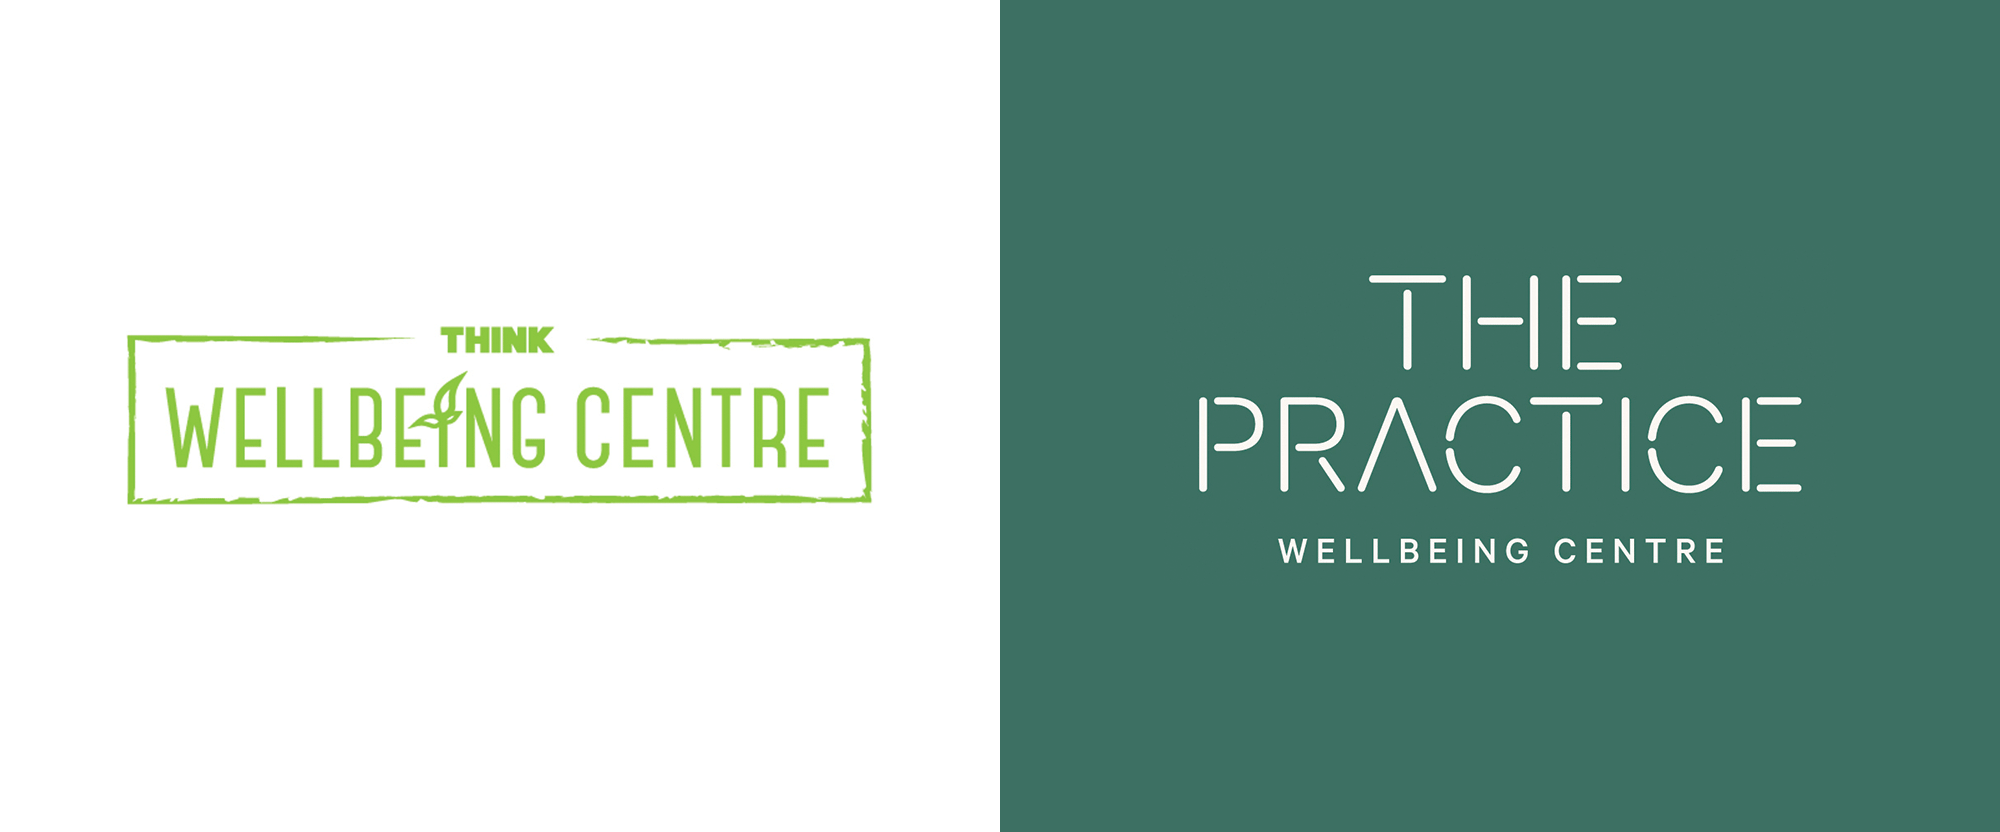 New Name, Logo, and Identity for The Practice by SomeOne